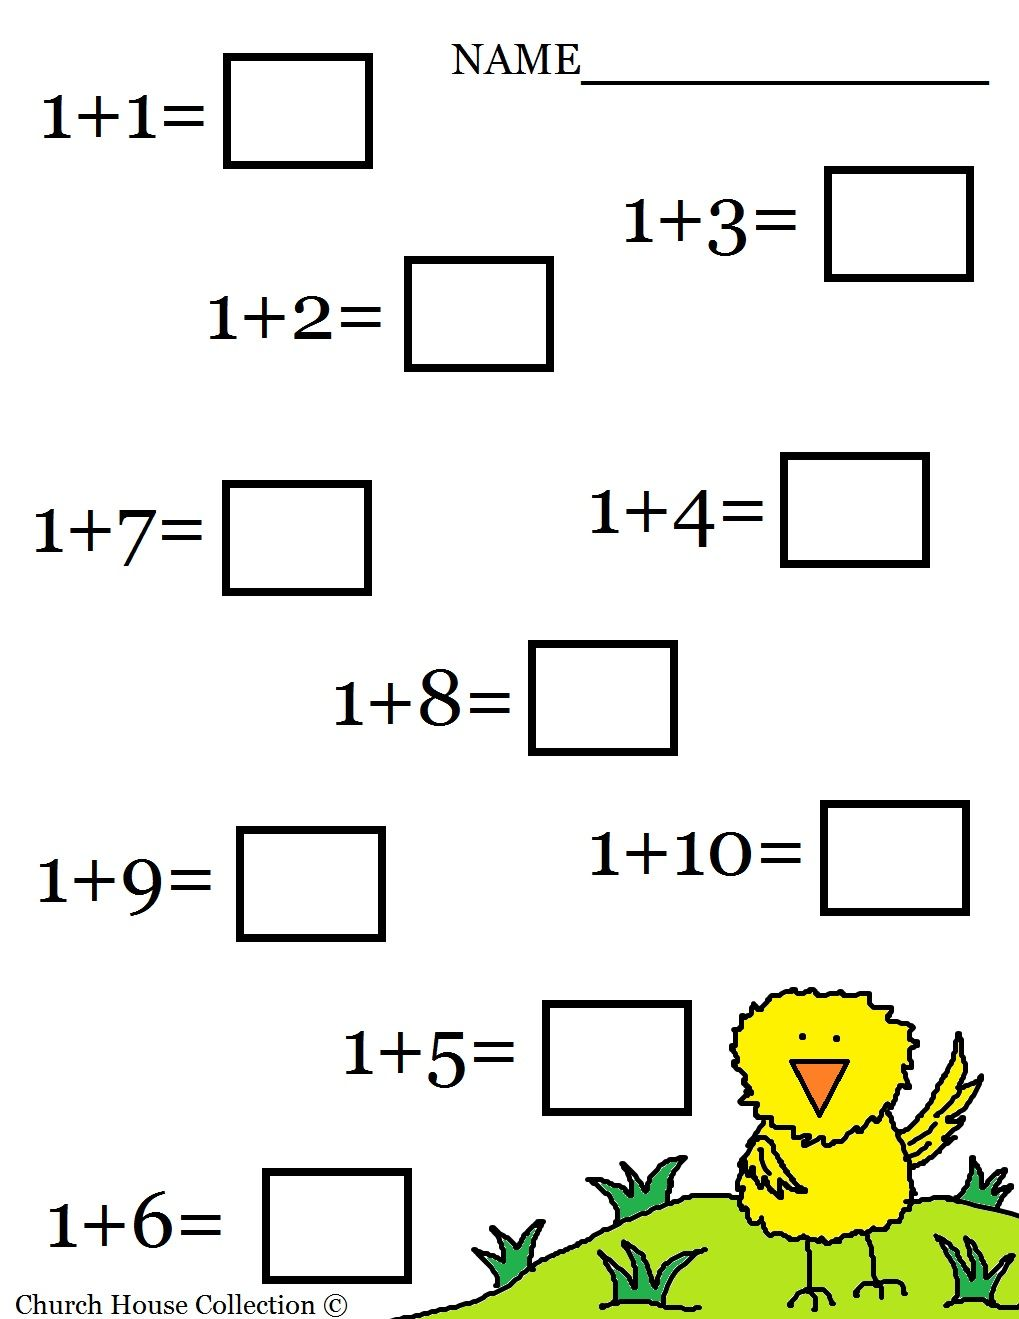 Aldiablosus  Nice  Images About Worksheets  Math On Pinterest  Math Sheets  With Excellent  Images About Worksheets  Math On Pinterest  Math Sheets Math Worksheets For Kindergarten And Simple Addition With Cute Preschool Music Worksheets Also Free Printable Middle School Worksheets In Addition Facial Expressions Worksheet And Math Worksheets Addition With Regrouping As Well As Esl Grammar Worksheet Additionally Character Motives Worksheet From Pinterestcom With Aldiablosus  Excellent  Images About Worksheets  Math On Pinterest  Math Sheets  With Cute  Images About Worksheets  Math On Pinterest  Math Sheets Math Worksheets For Kindergarten And Simple Addition And Nice Preschool Music Worksheets Also Free Printable Middle School Worksheets In Addition Facial Expressions Worksheet From Pinterestcom